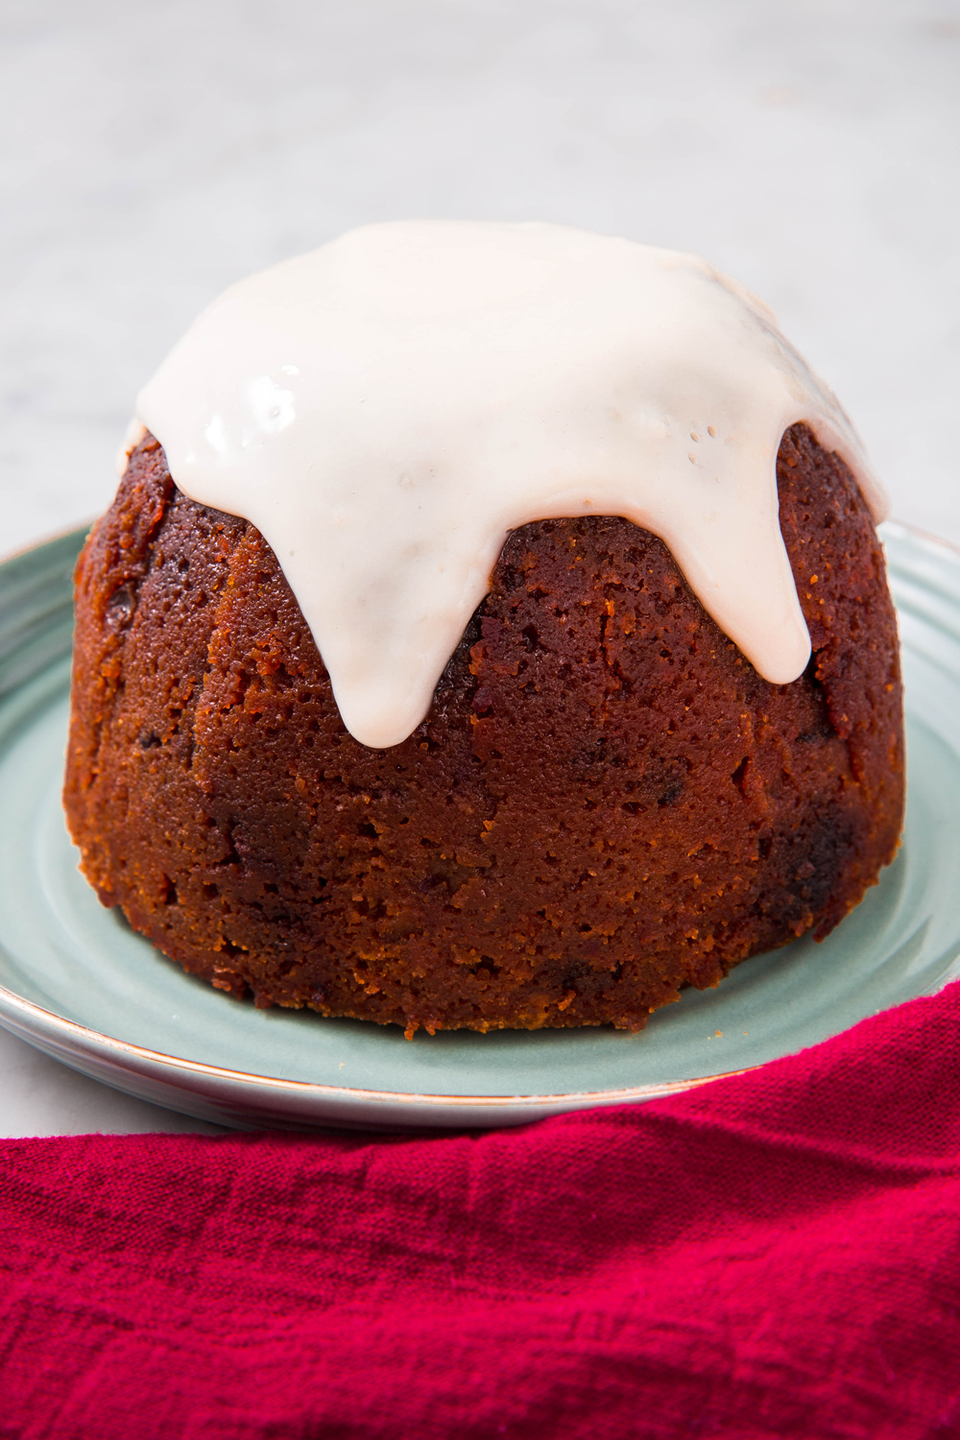 """<p>This will be a lighter addition to your Christmas desserts!</p><p>Get the recipe from <a href=""""https://www.delish.com/holiday-recipes/christmas/a24235301/gluten-free-christmas-pudding/"""" rel=""""nofollow noopener"""" target=""""_blank"""" data-ylk=""""slk:Delish"""" class=""""link rapid-noclick-resp"""">Delish</a>. </p>"""